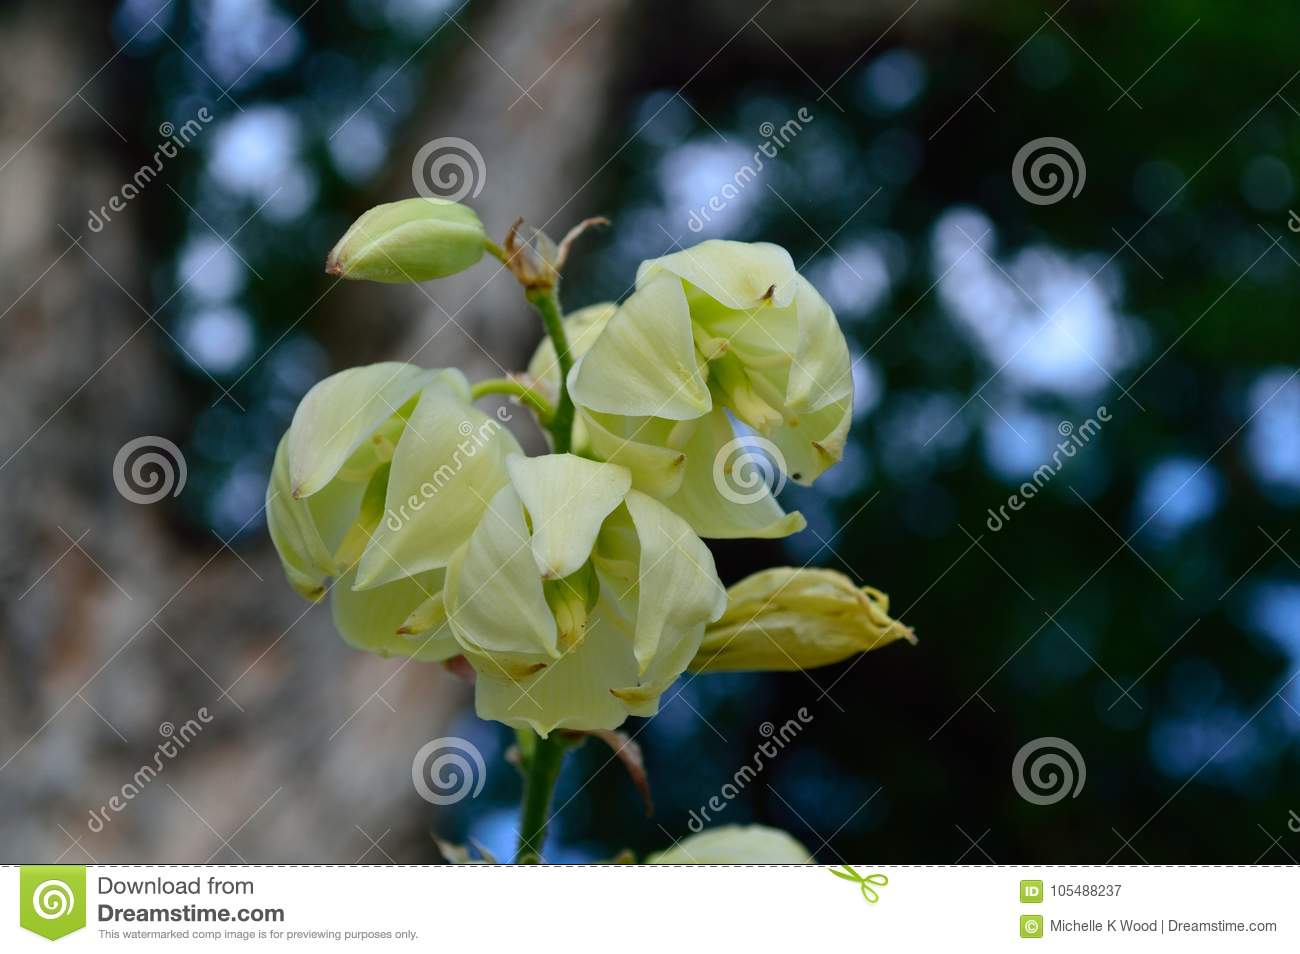 Yucca blossoms close up